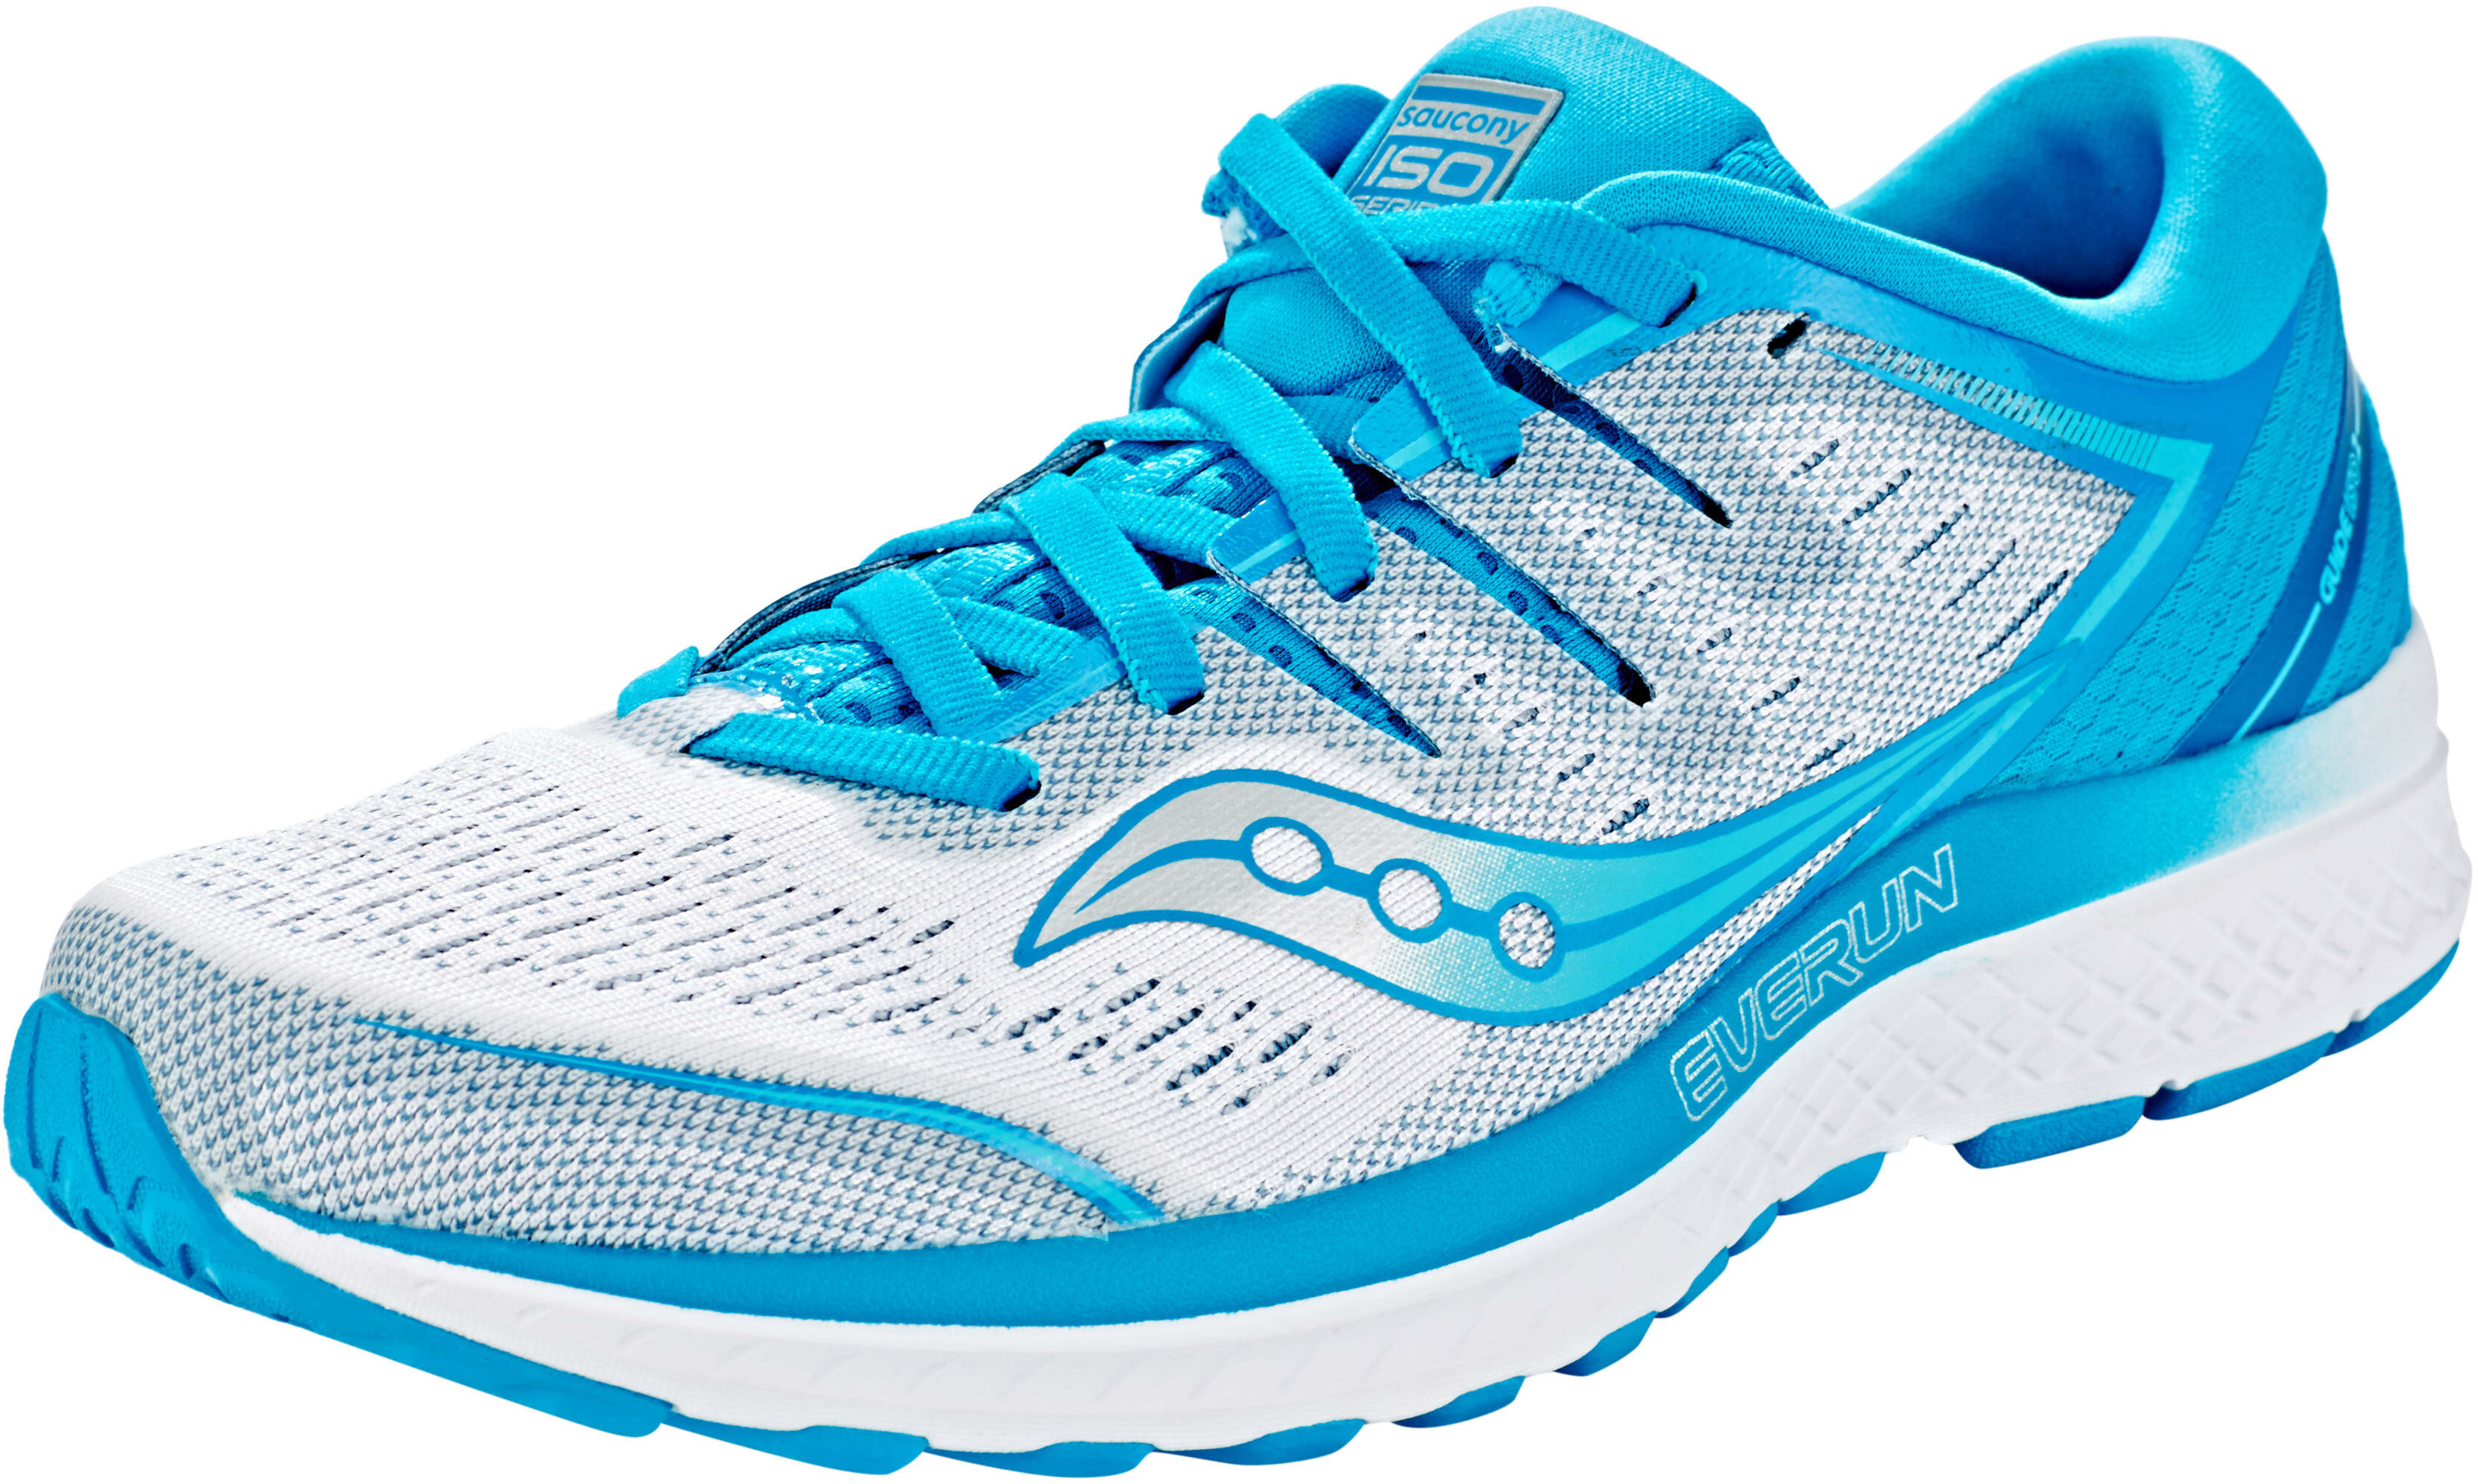 08c9bcd3476 saucony Guide ISO 2 - Chaussures running Femme - bleu blanc ...